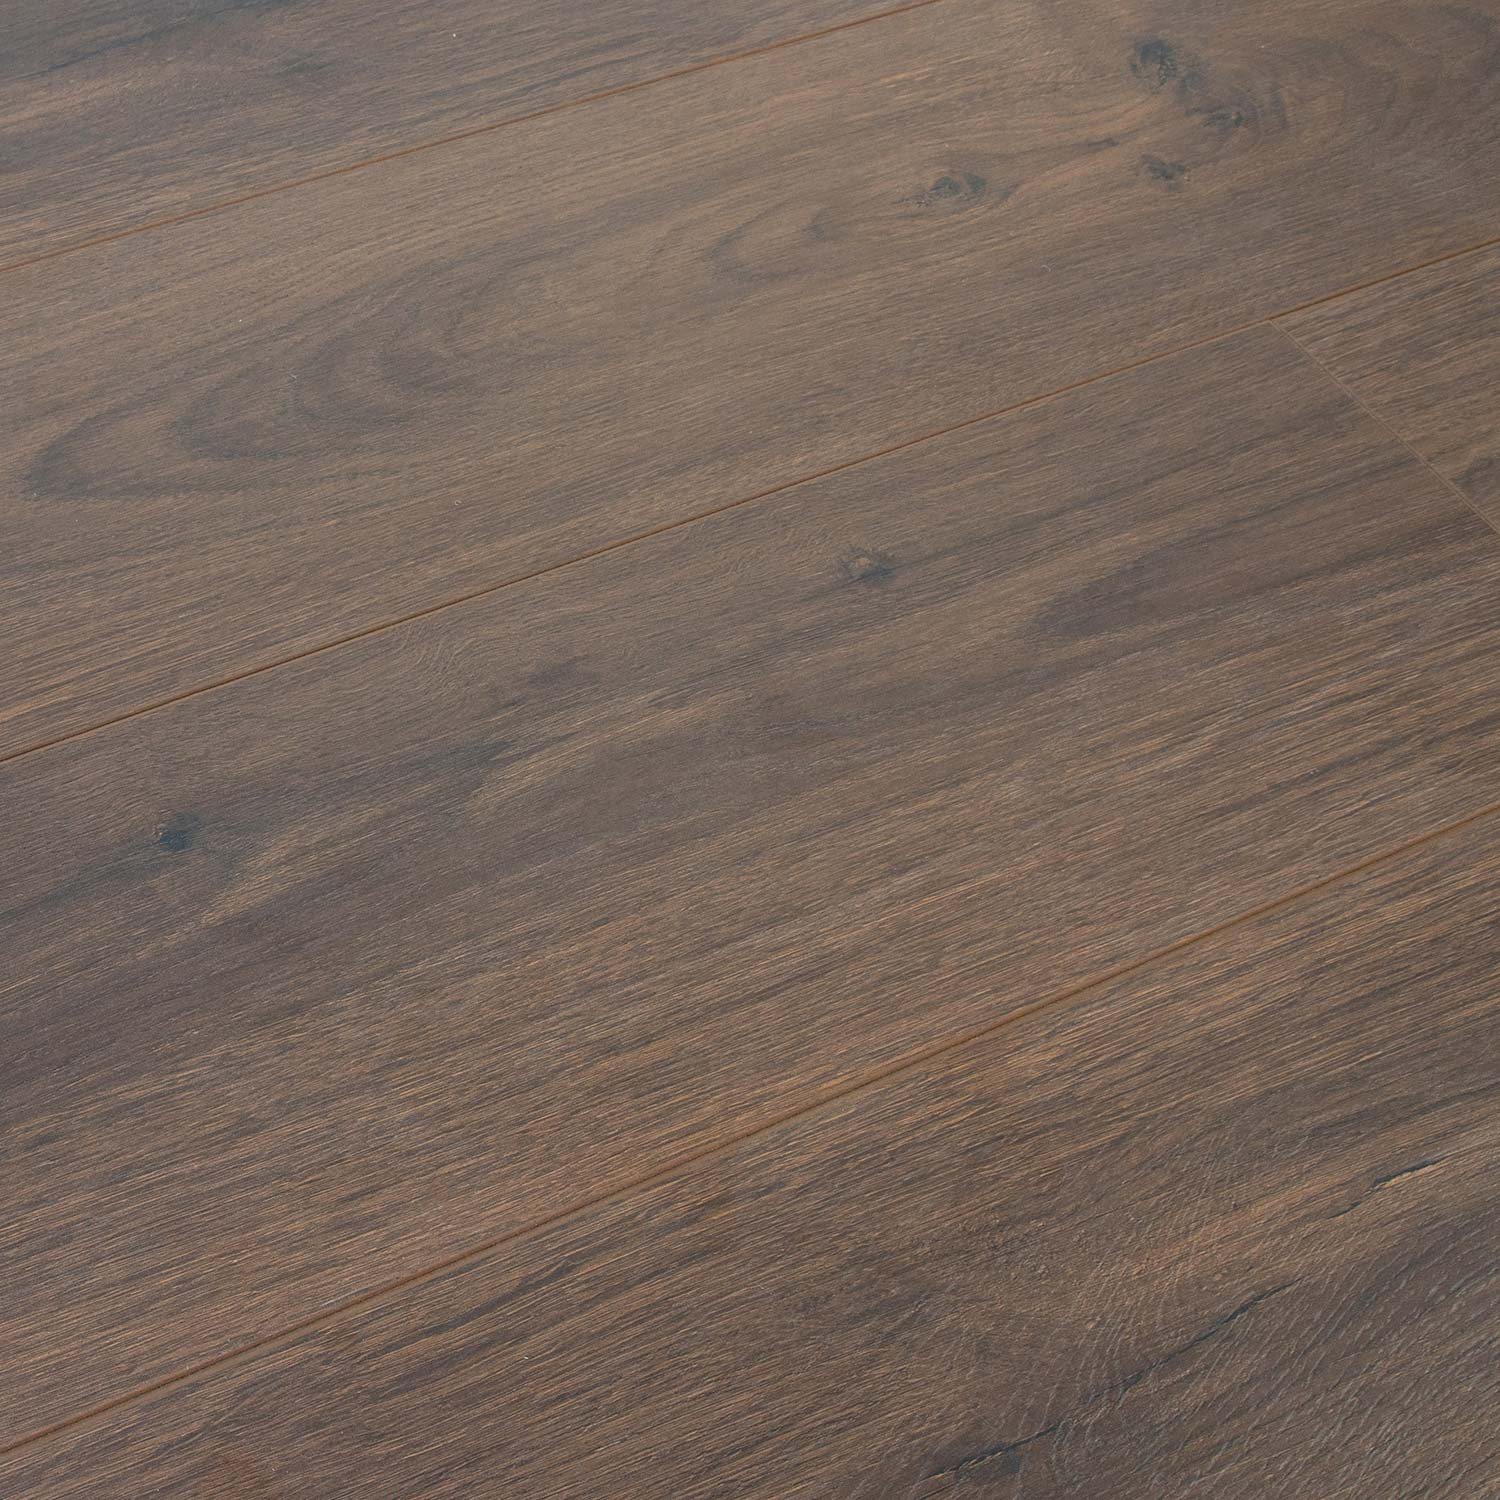 Rich Walnut Laminate | AC5 12mm